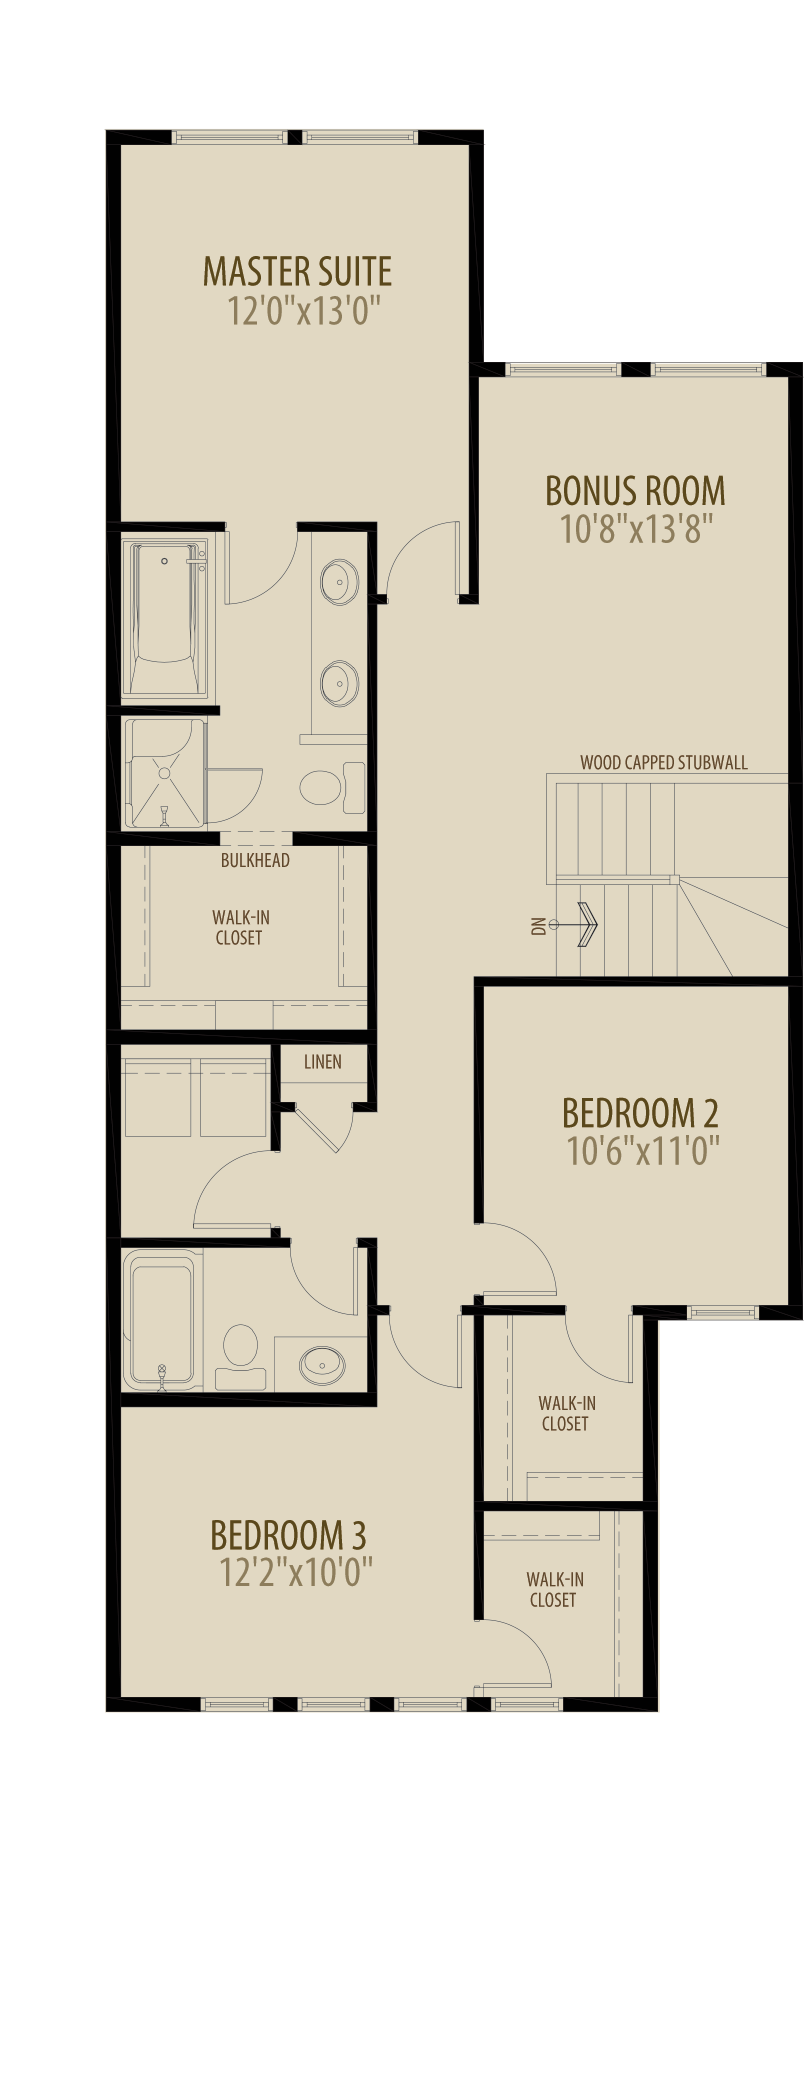 Expanded Bedrooms Adds 46 sq ft